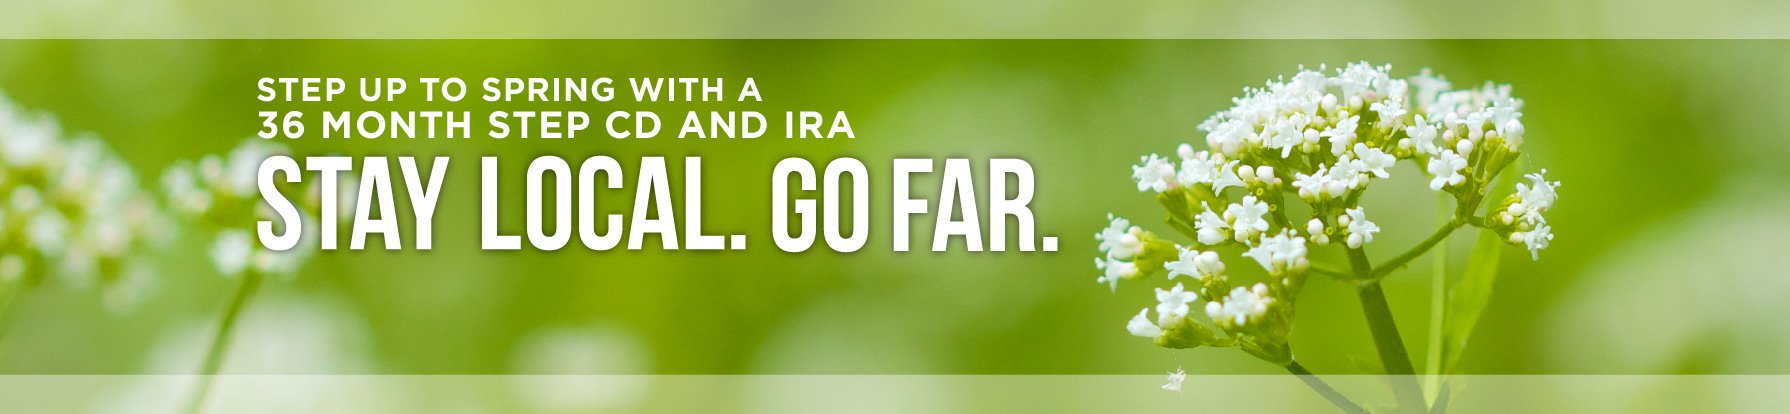 Step CD and IRA offer